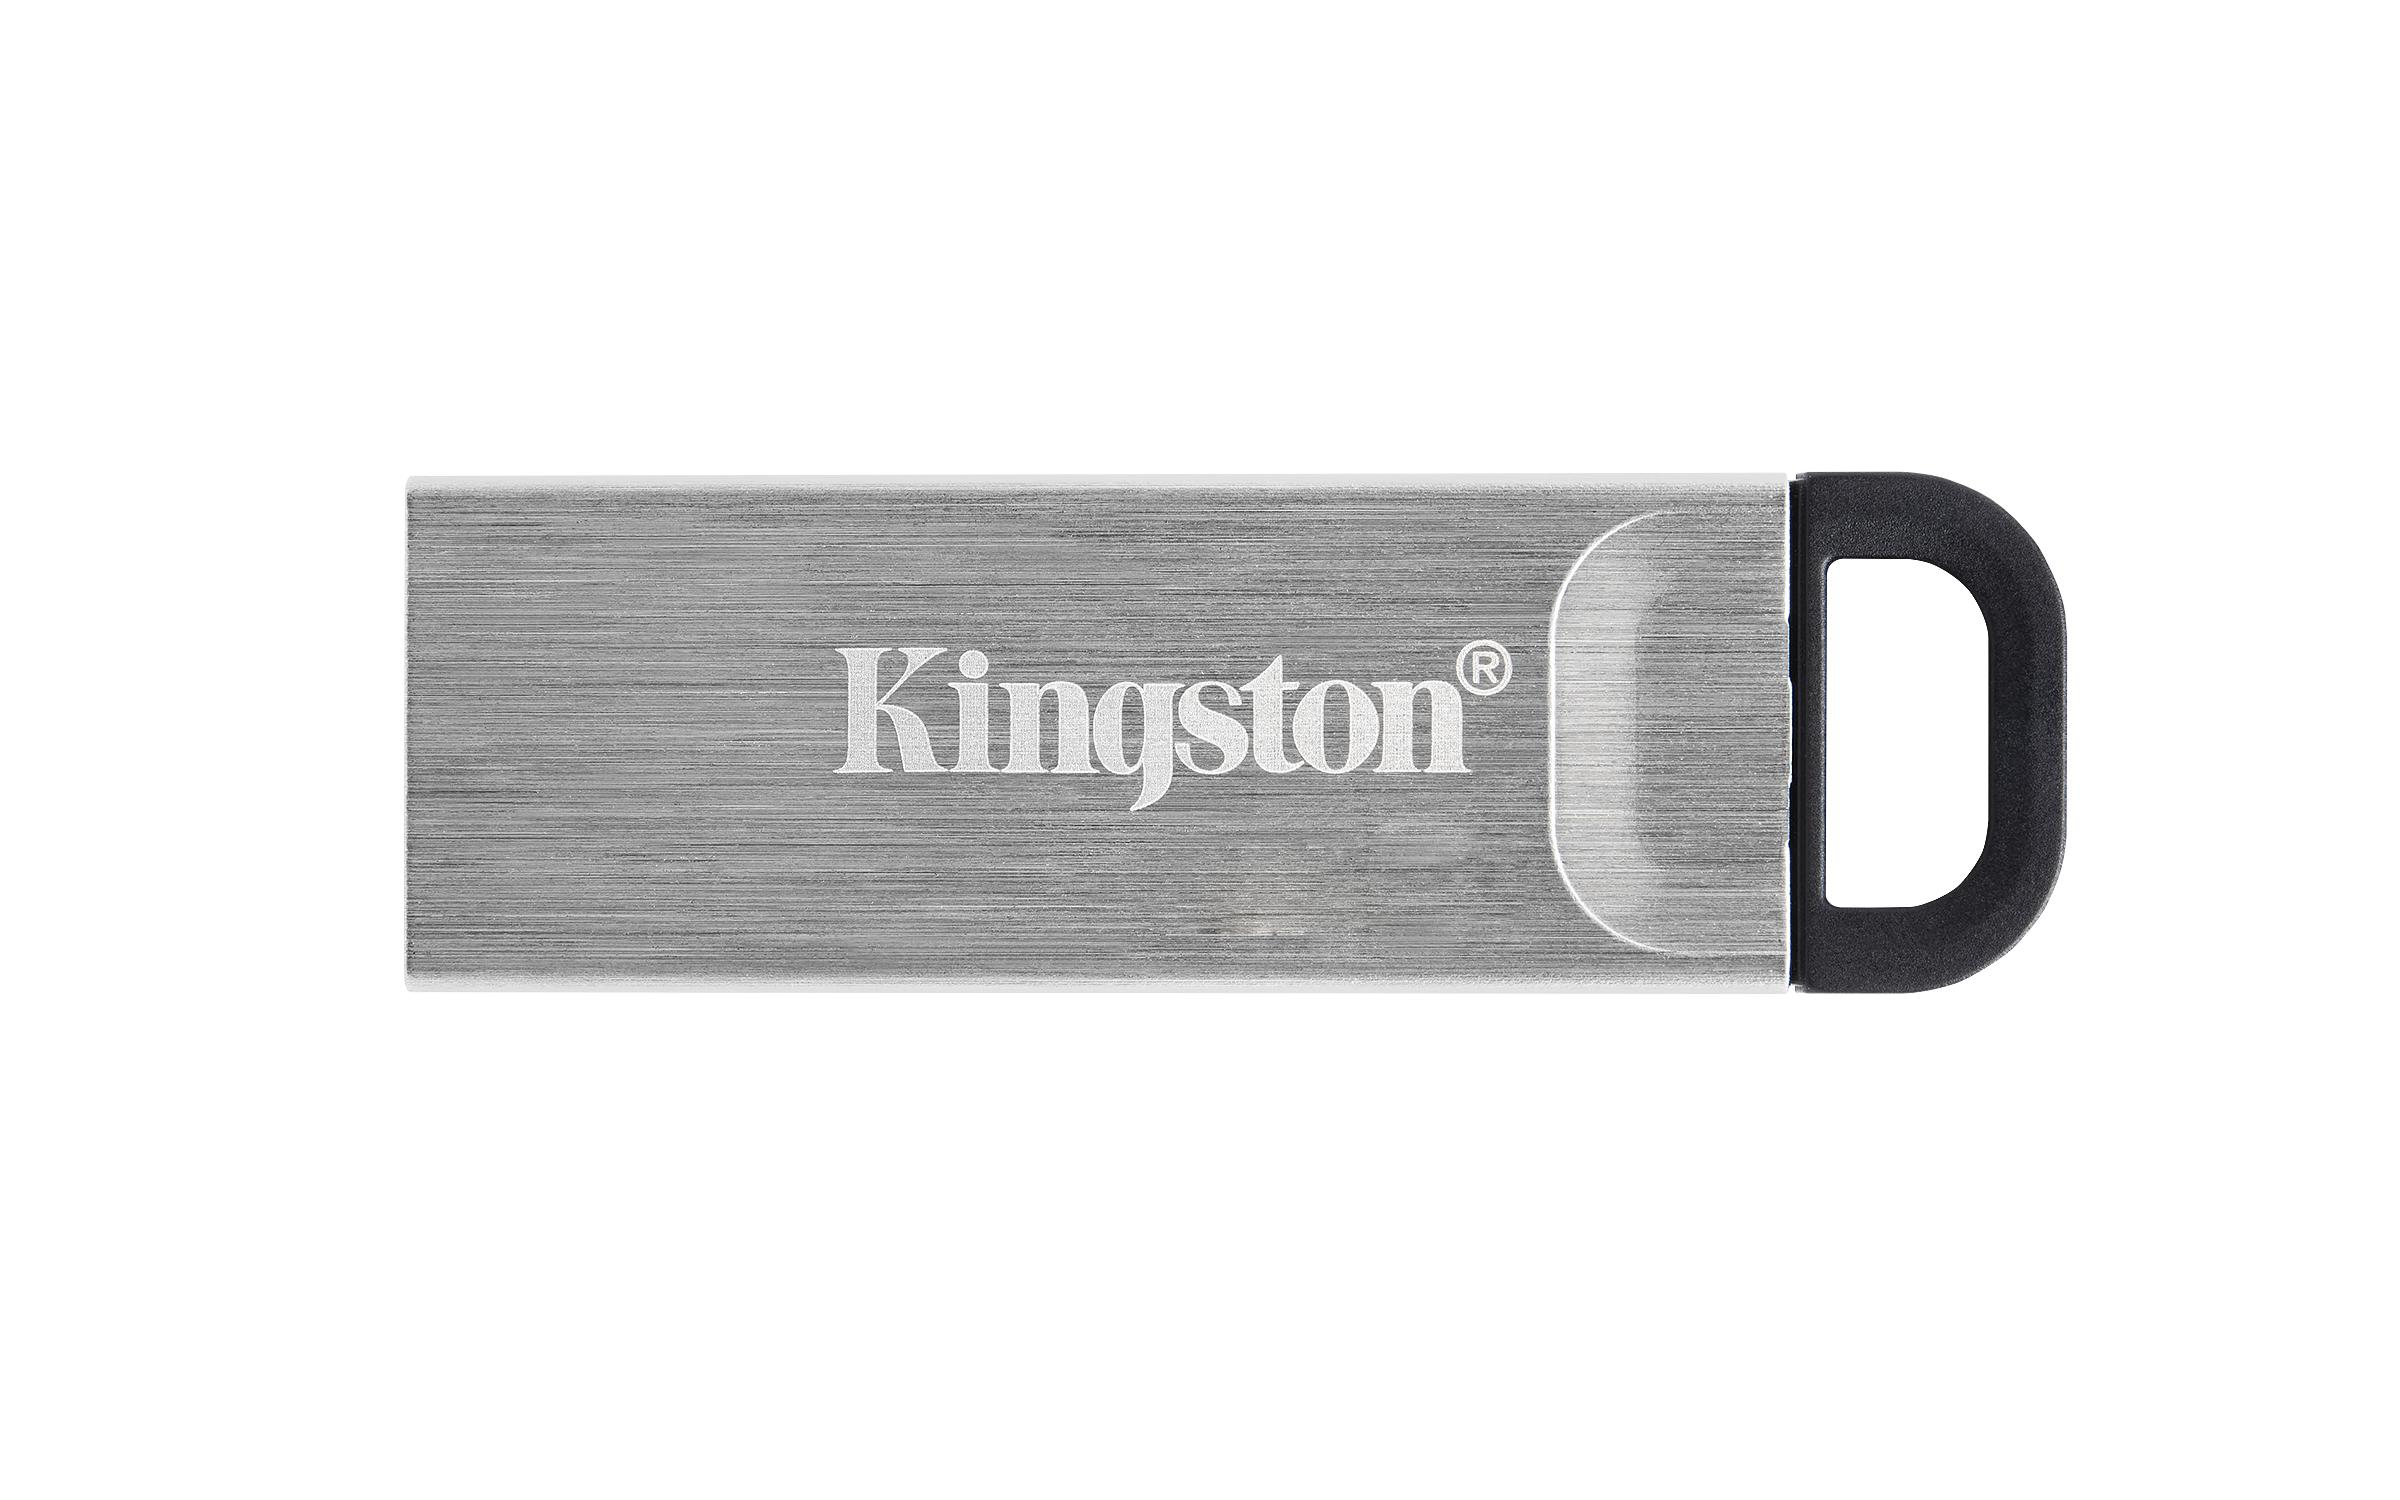 USB памет KINGSTON DataTraveler Kyson 64GB, USB 3.2 Gen 1, Сребрист